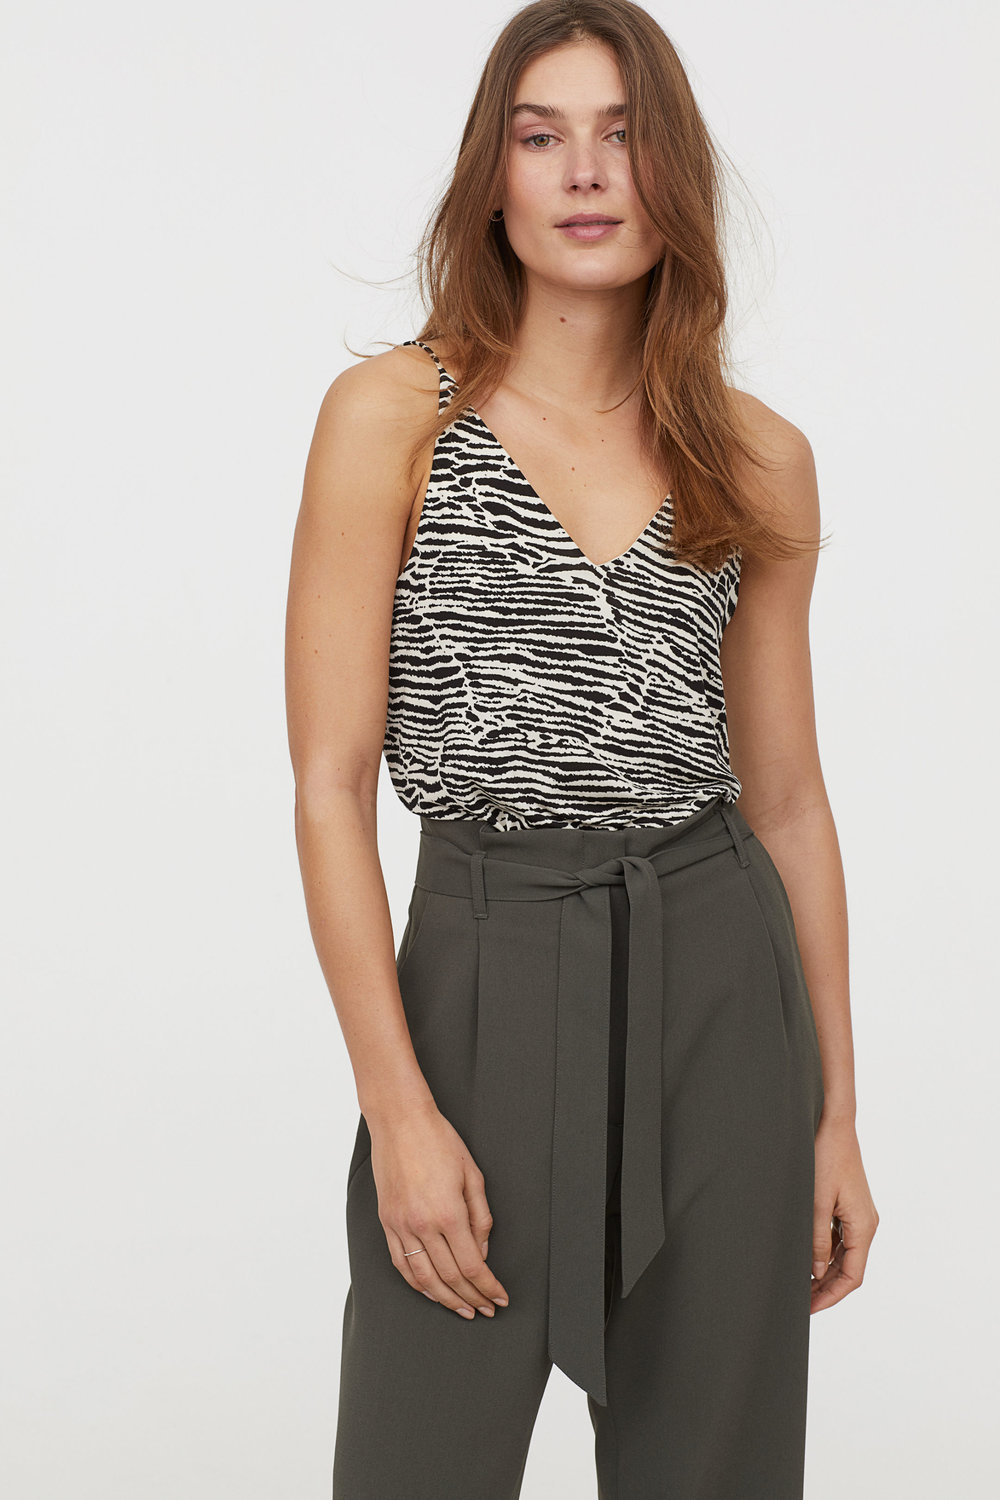 H&M V-neck camisole